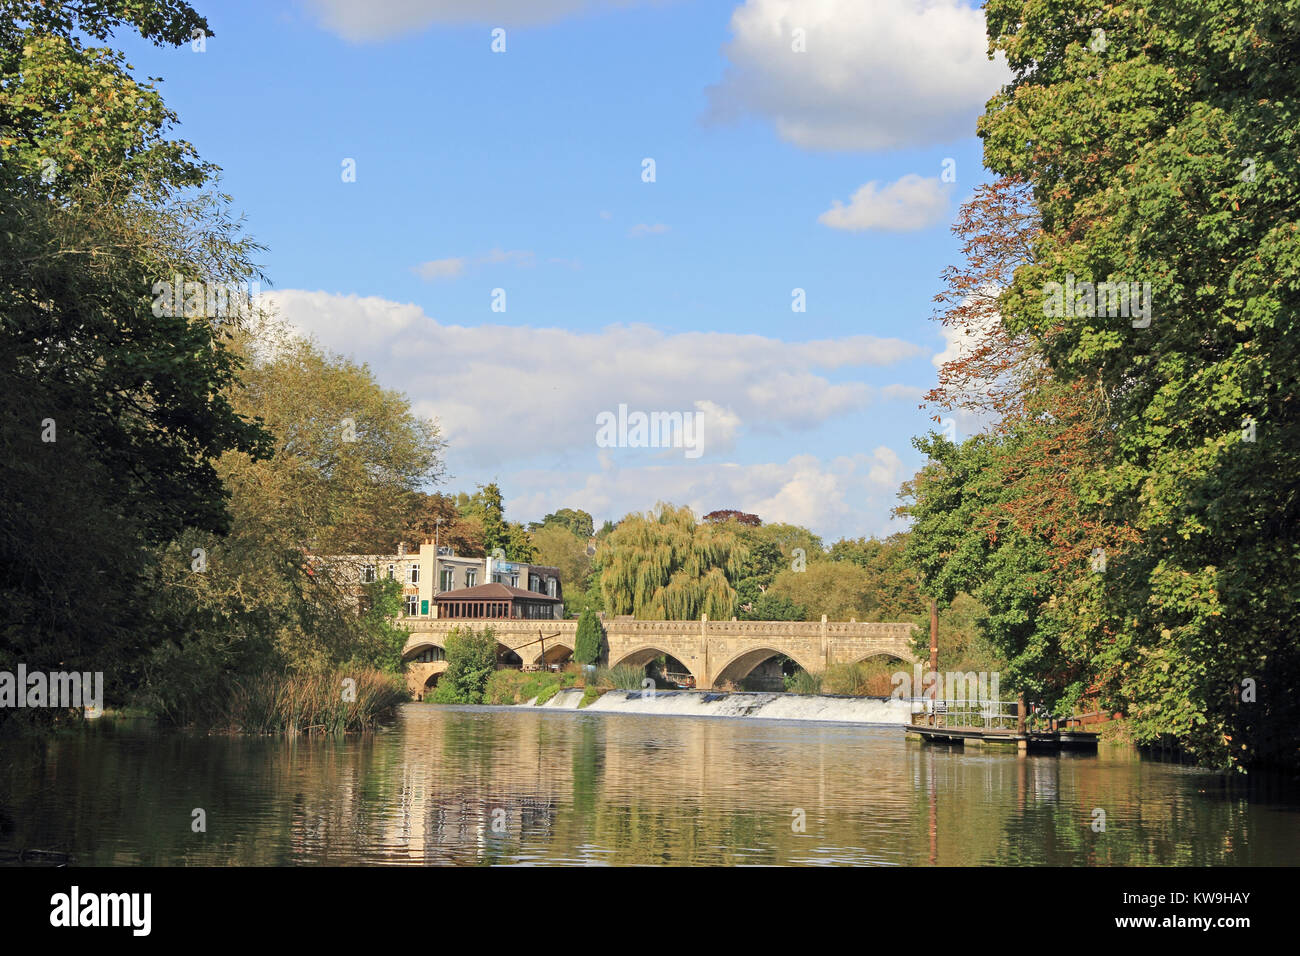 Batheaston Toll Bridge over River Avon, Batheaston, Bath Stock Photo